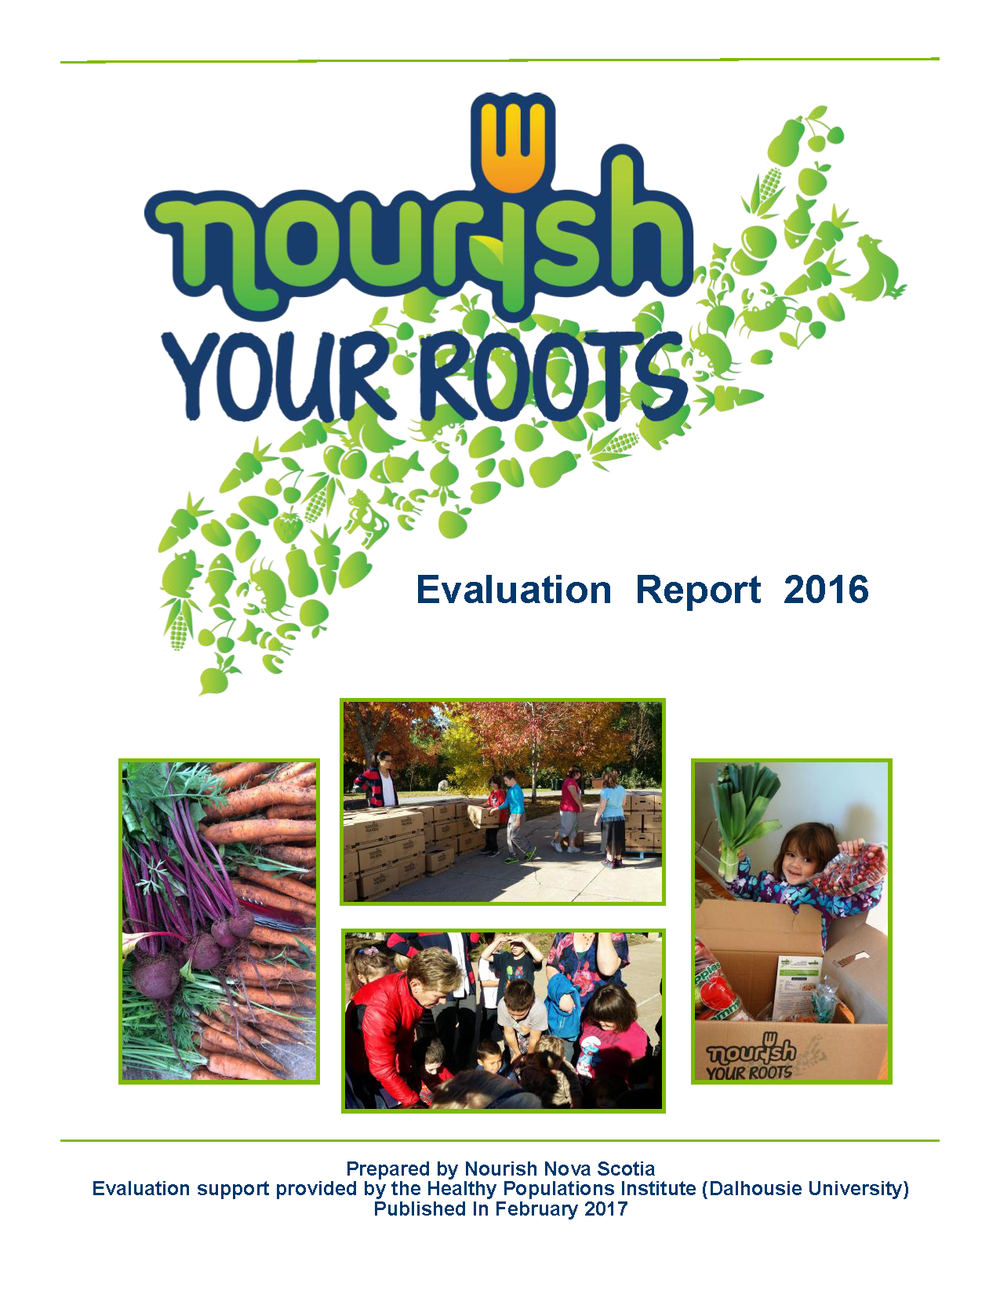 2016 Nourish Your Roots Evaluation